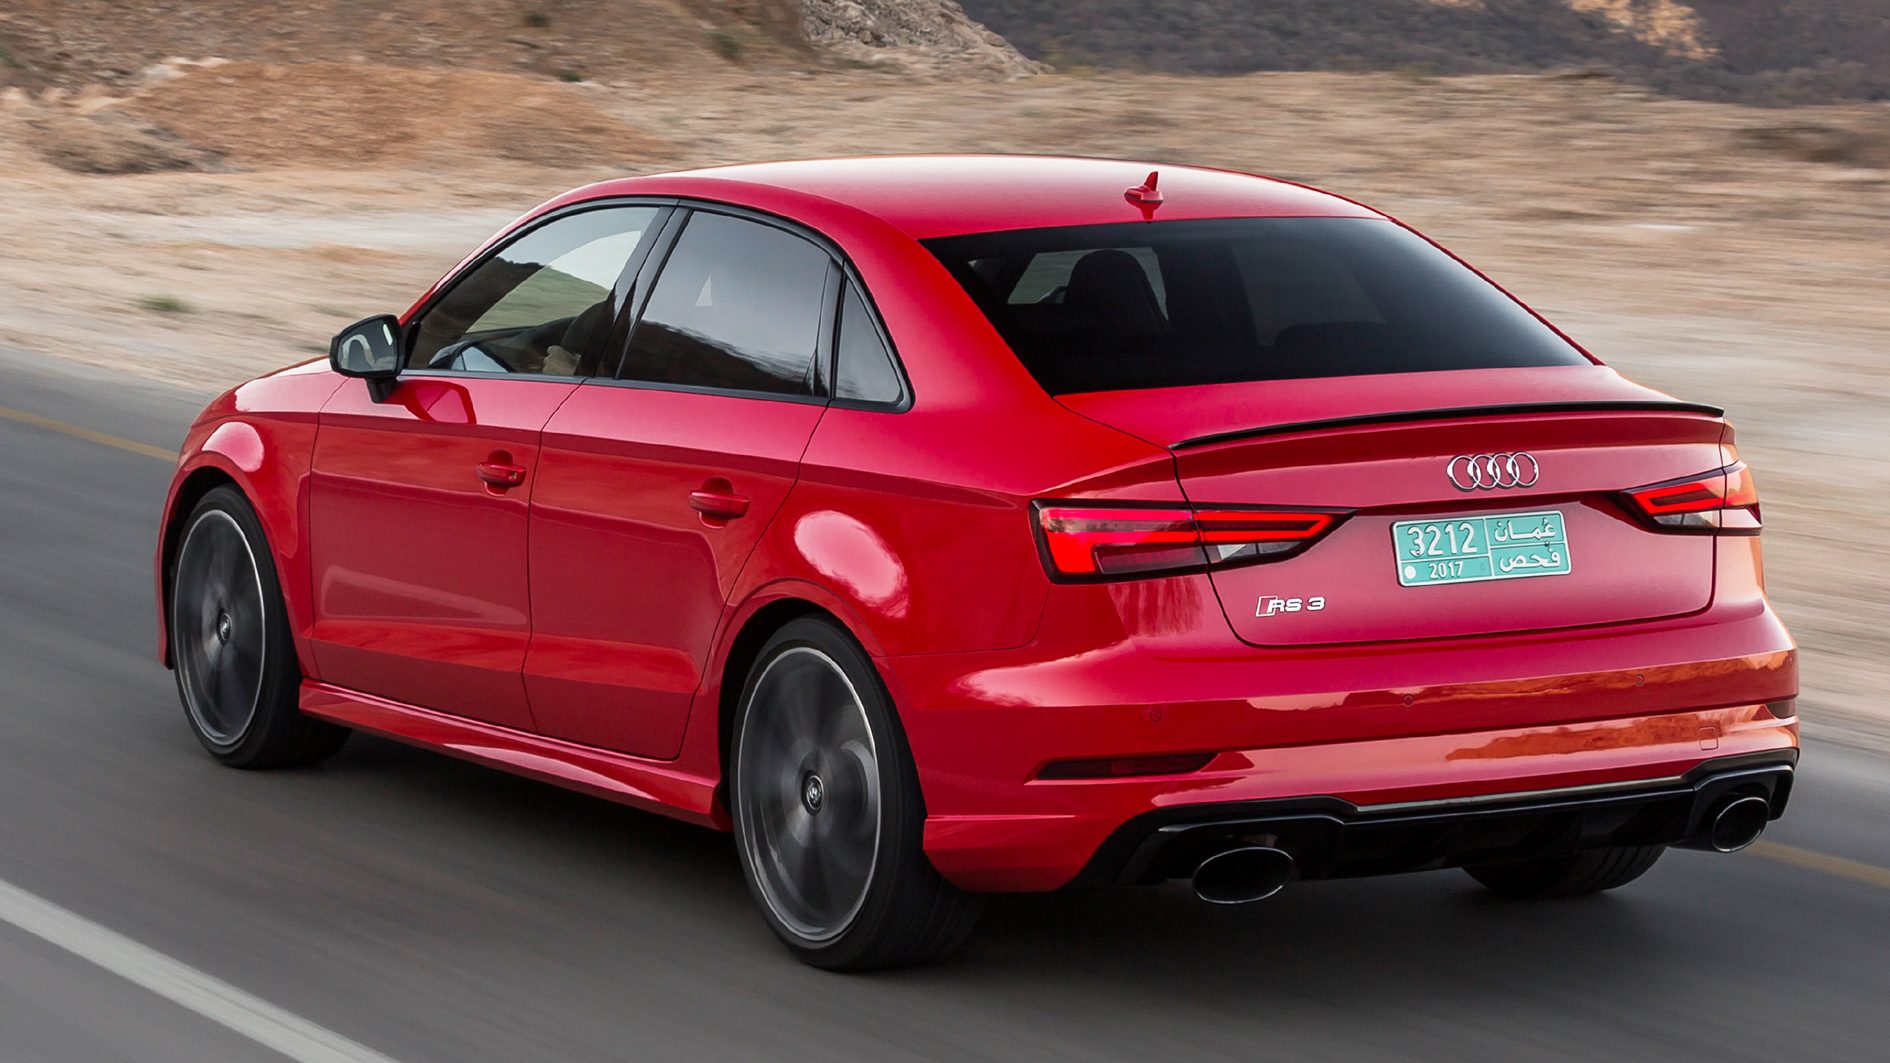 Innovative Audi RS3 2017 Sedan Test Drive Amp Review In The Oman Image Http